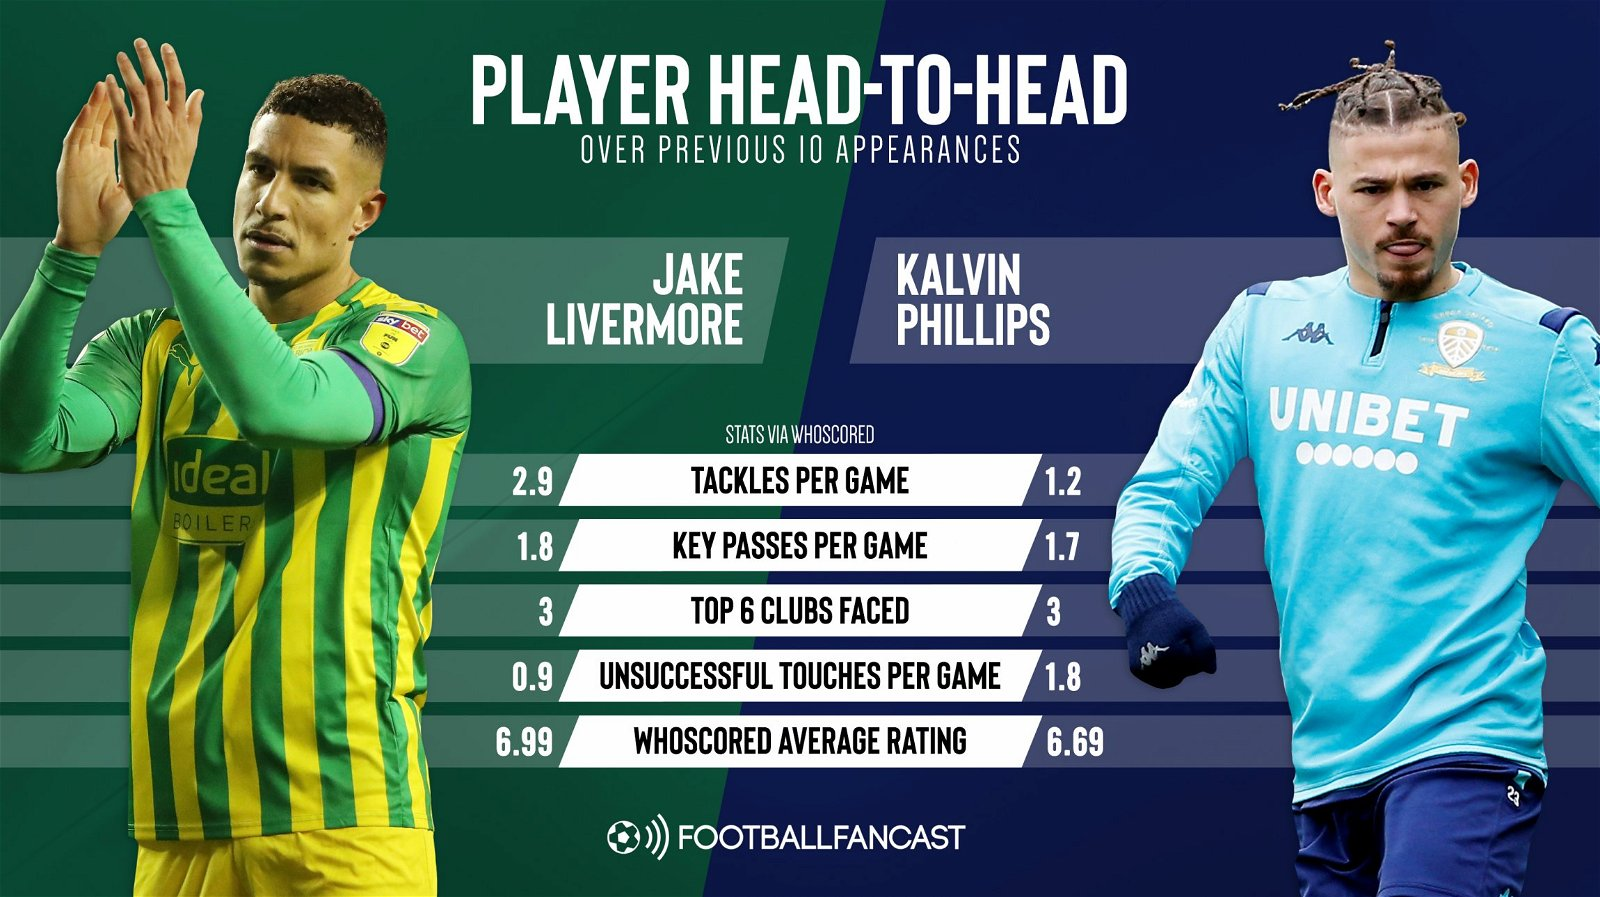 Jake Livermore vs Kalvin Phillips over their previous 10 appearances 1 - Jake Livermore would have every right to feel aggrieved if newspaper report comes true - opinion